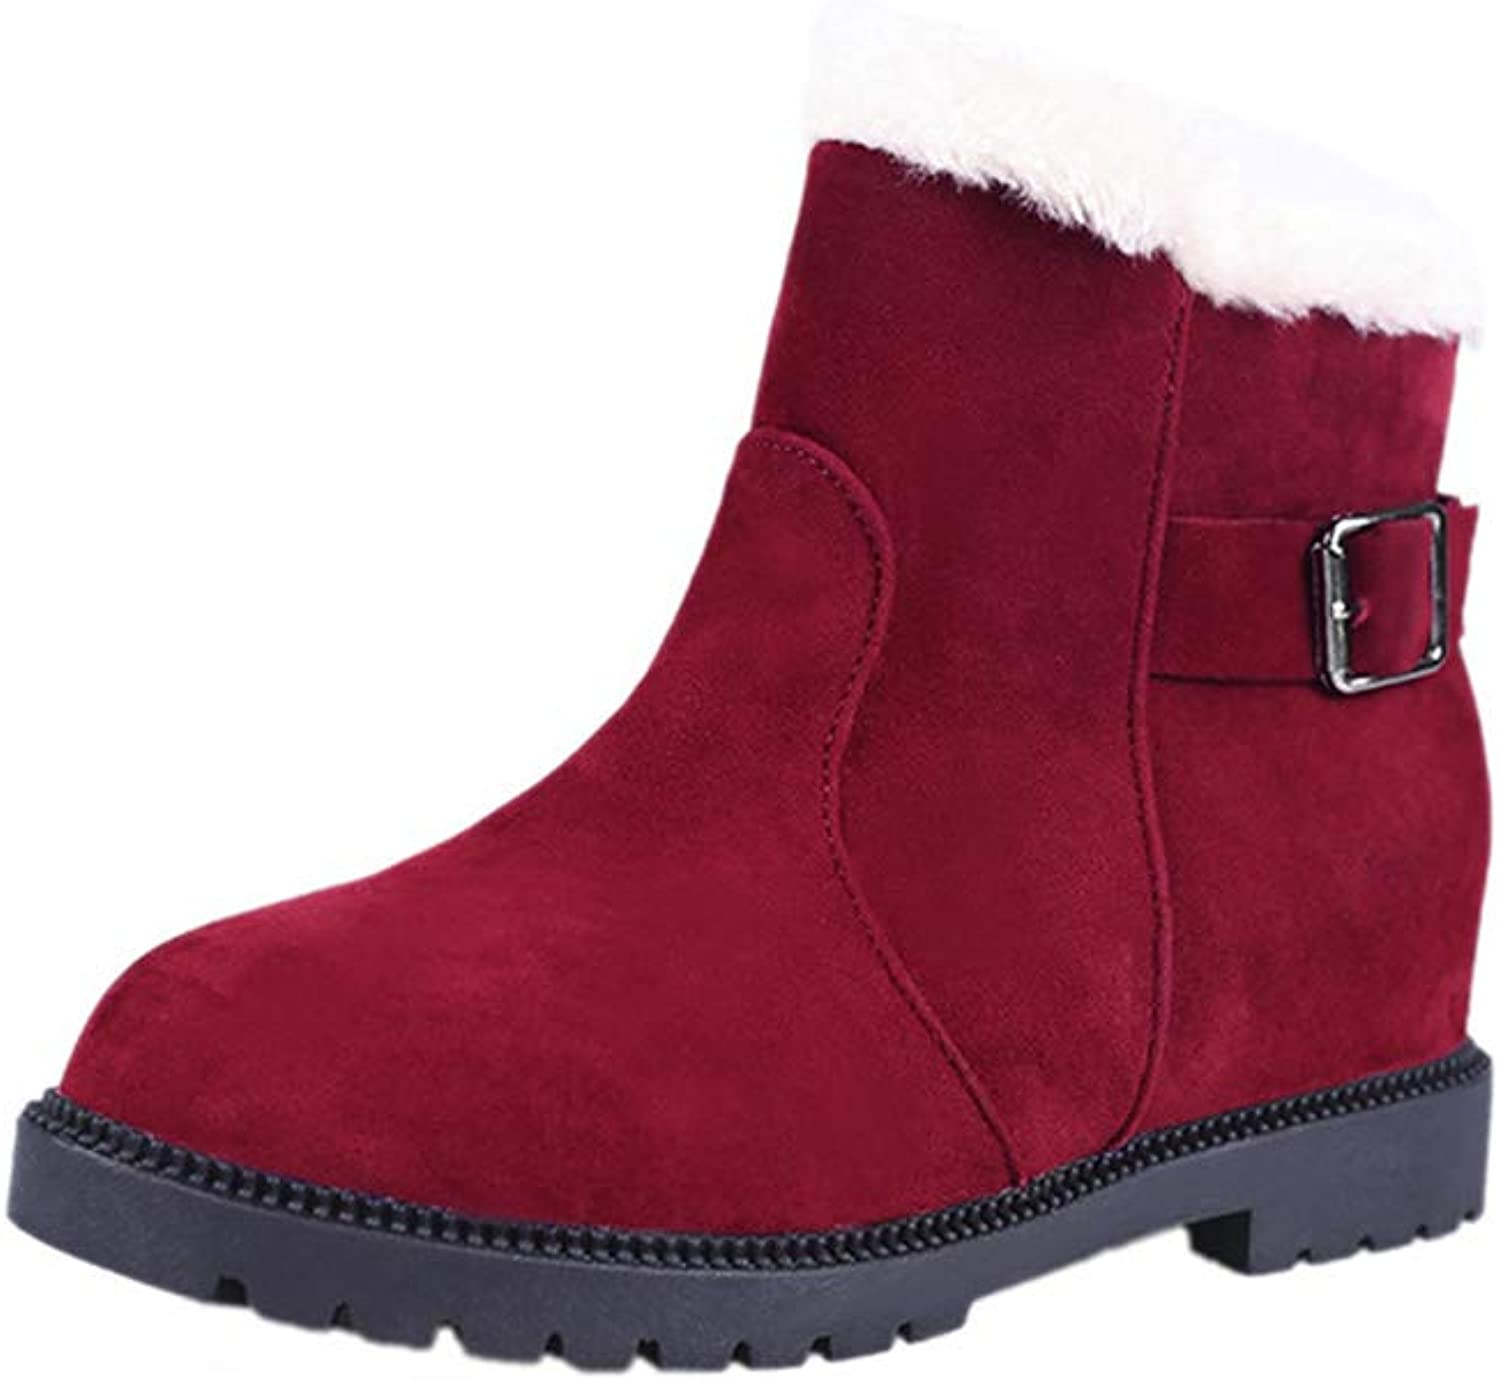 A-LING Women's Round Head shoes Slip-on Fashion Snow Boots